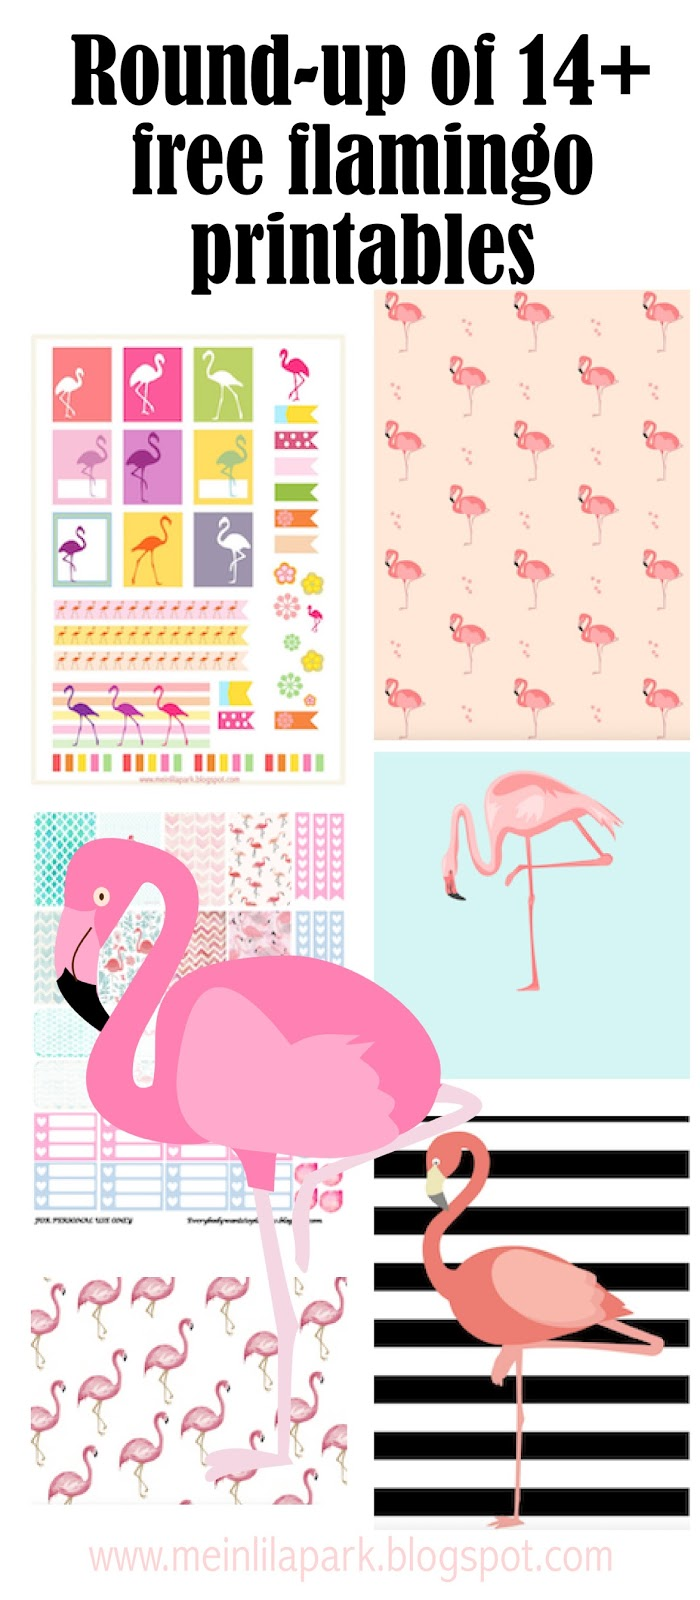 Free Flamingo Printables - Flamingos - Round-up